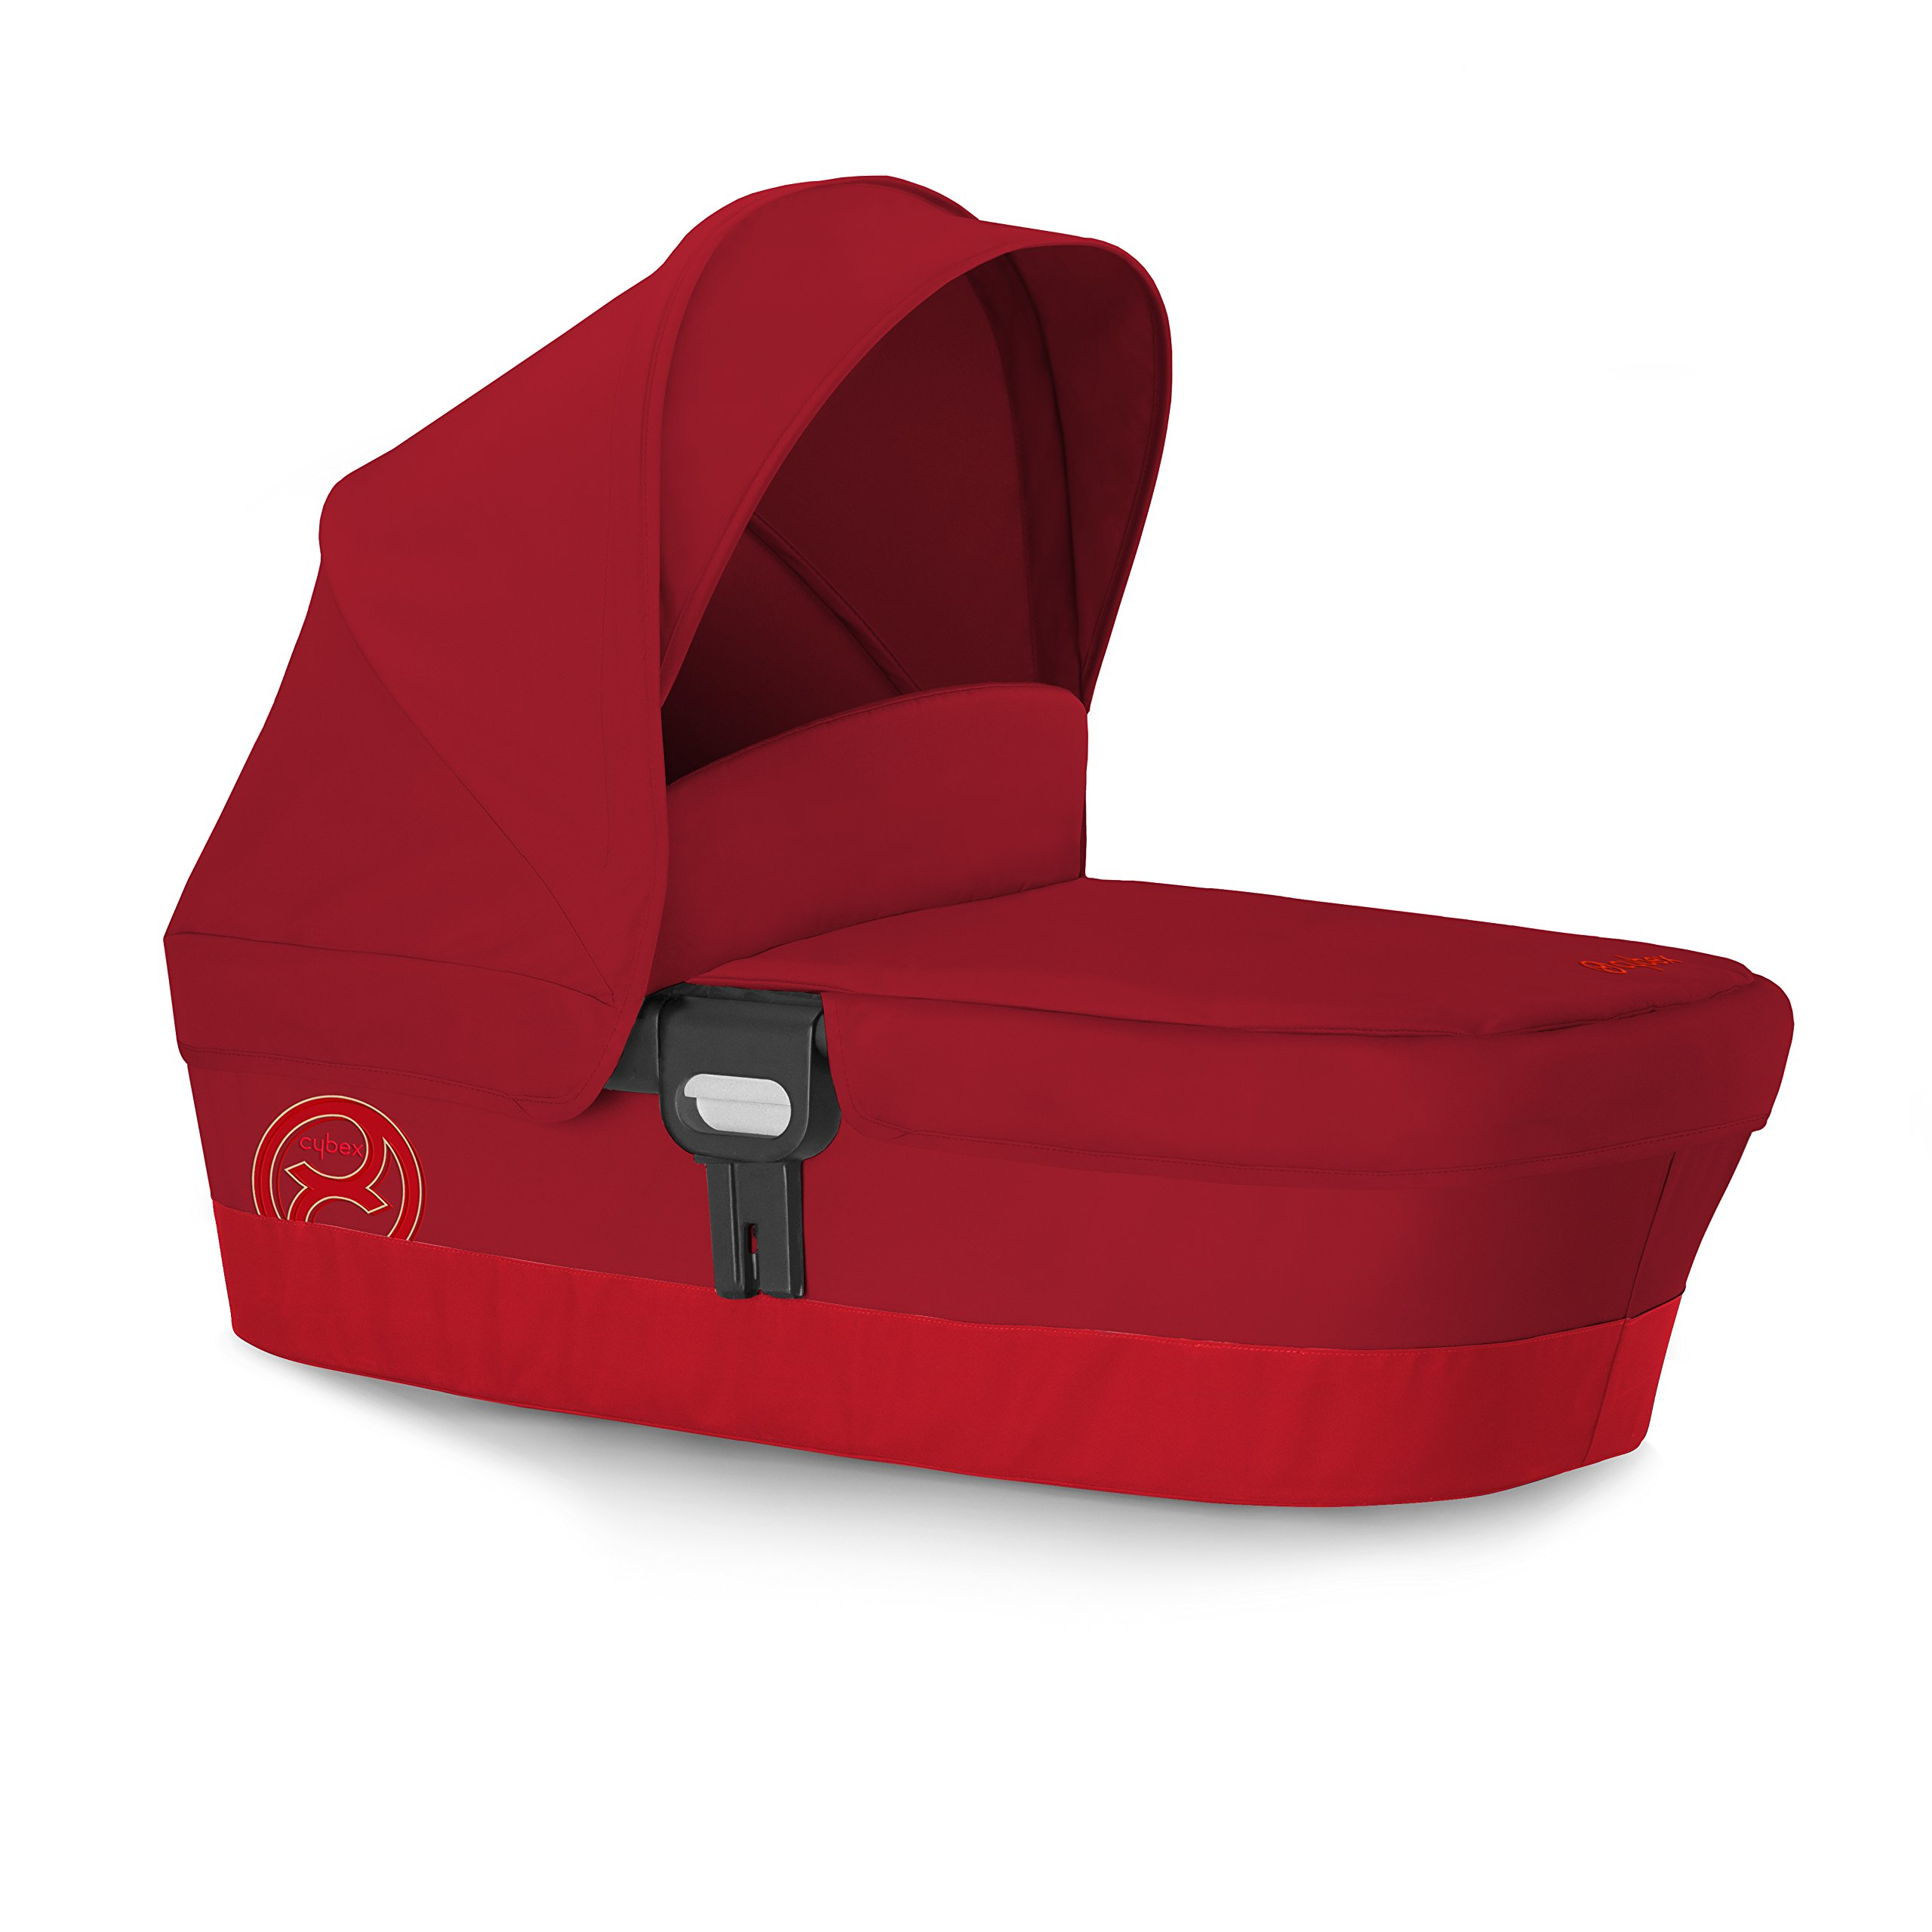 CYBEX Carry Cot M Stroller, Hot and Spicy